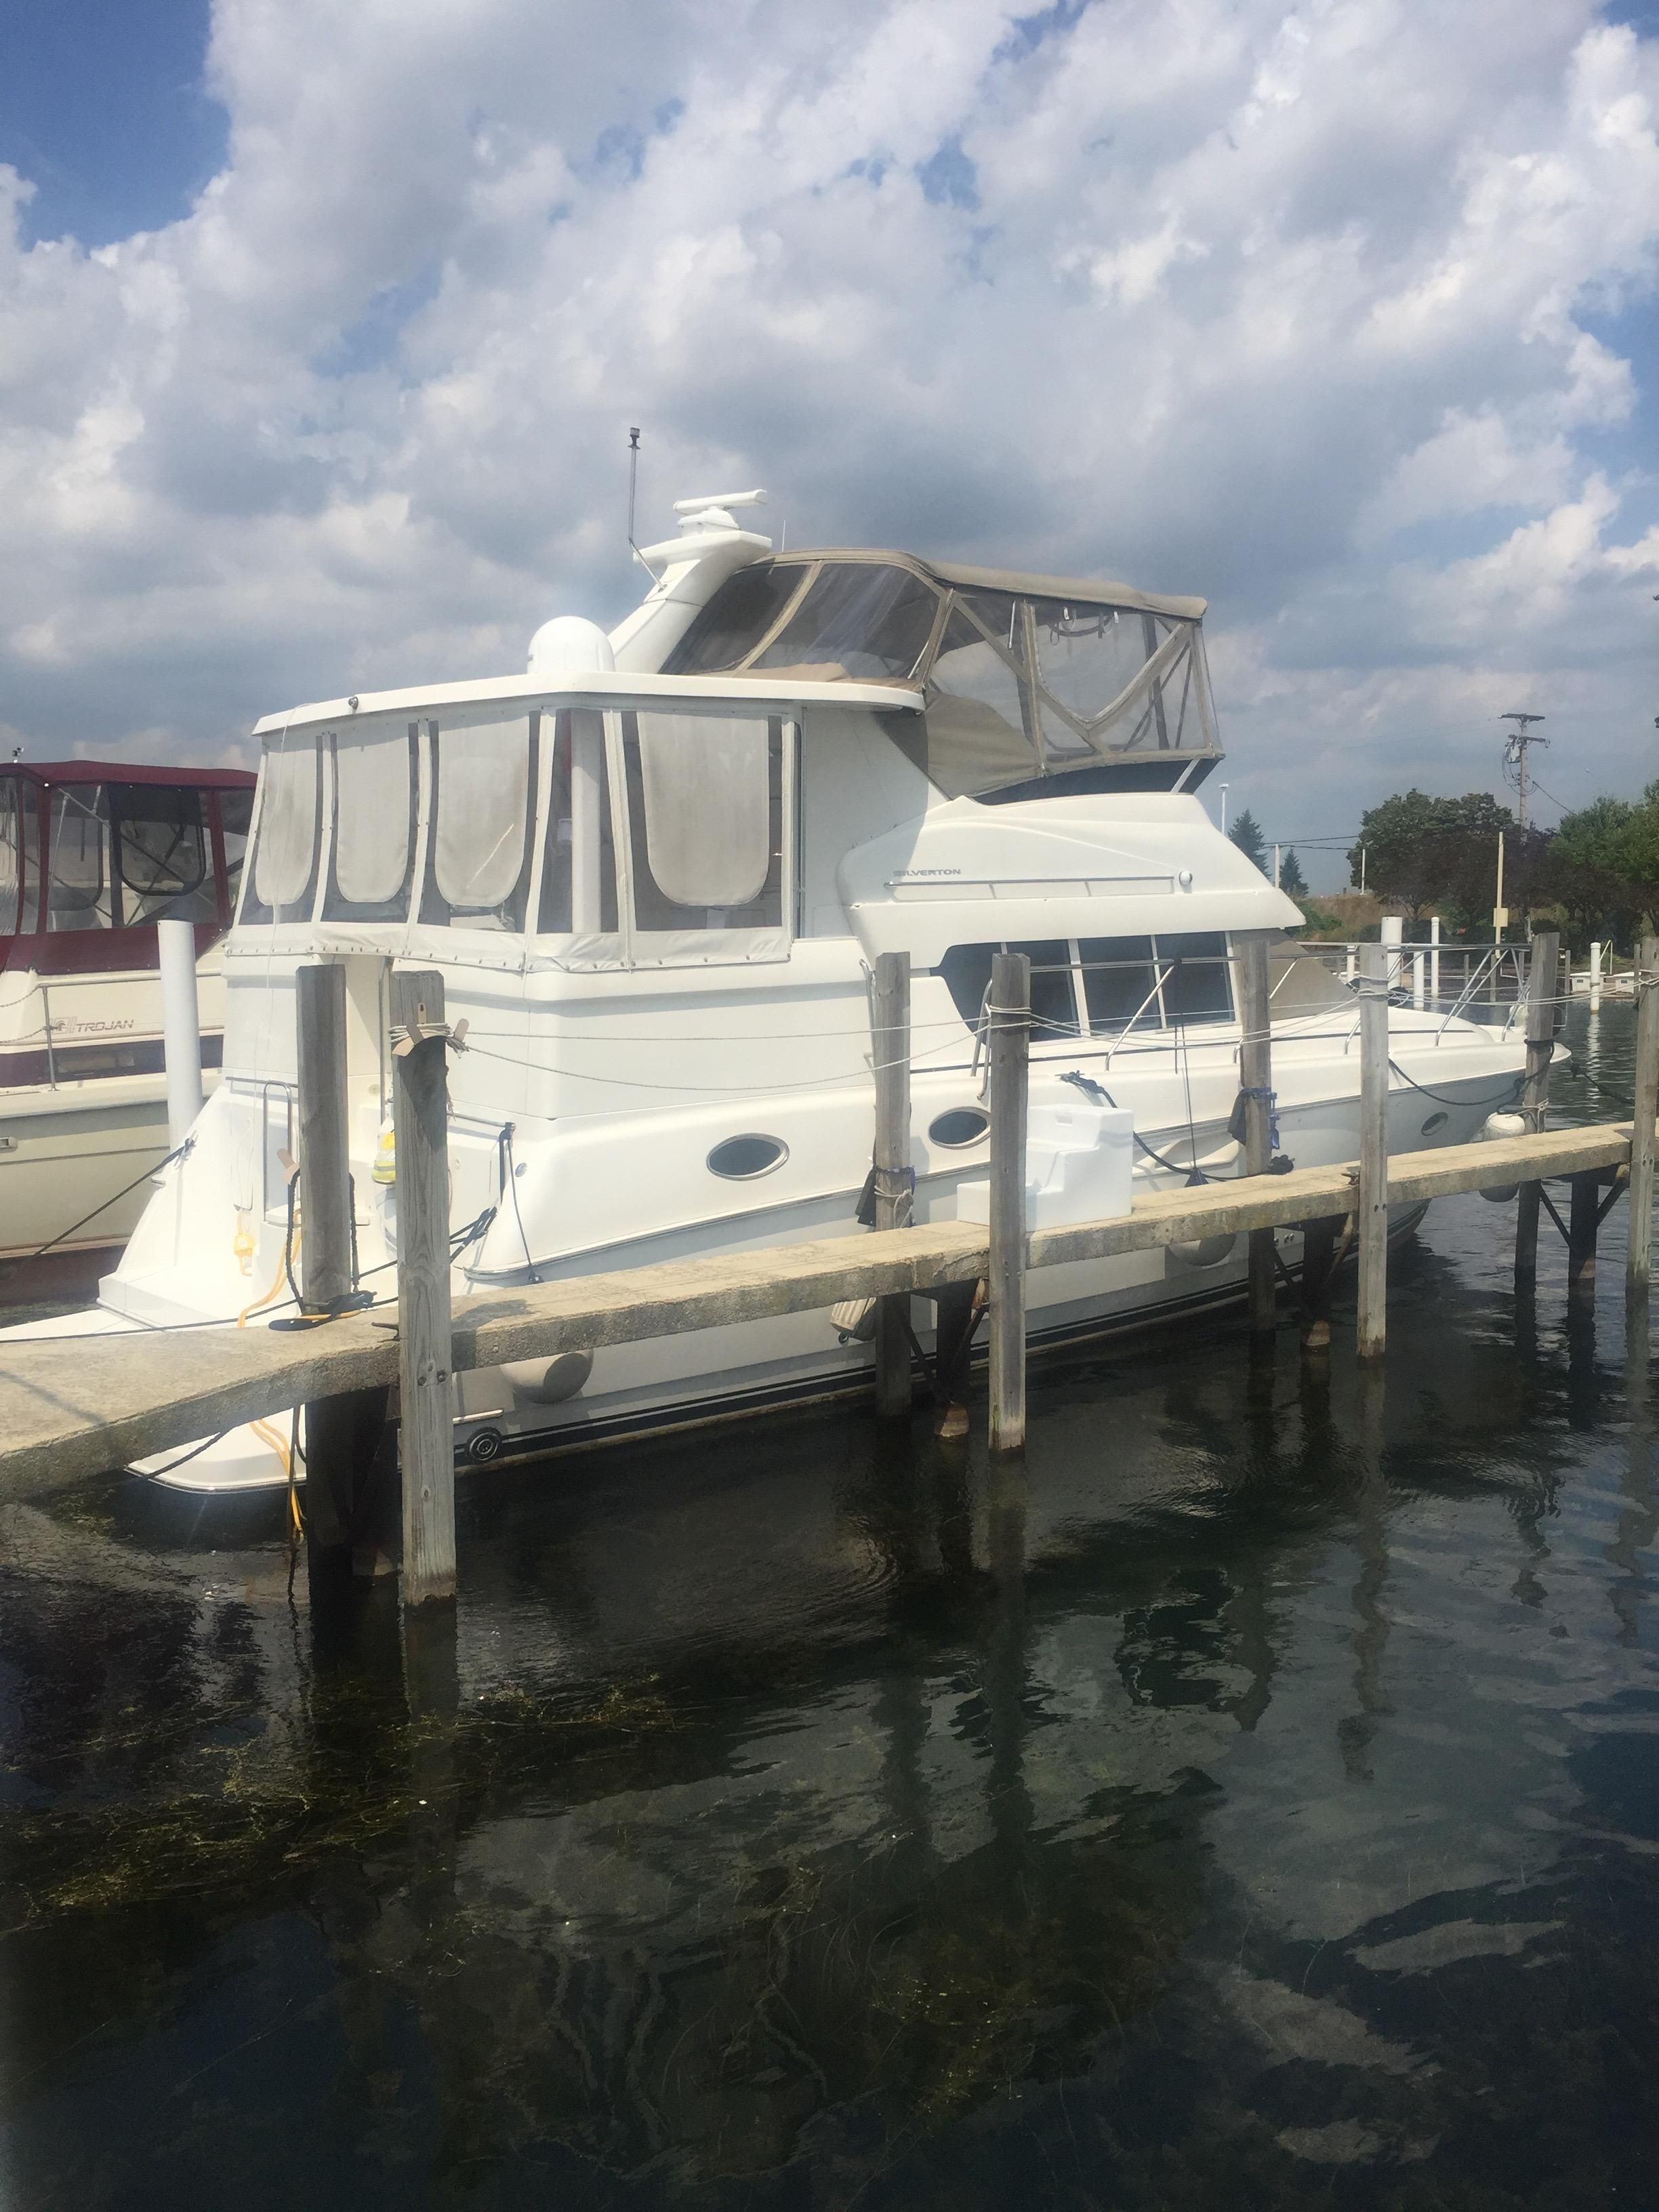 Big Ships Engine Rooms: 2000 Silverton 422 Motor Yacht Motor Yacht For Sale